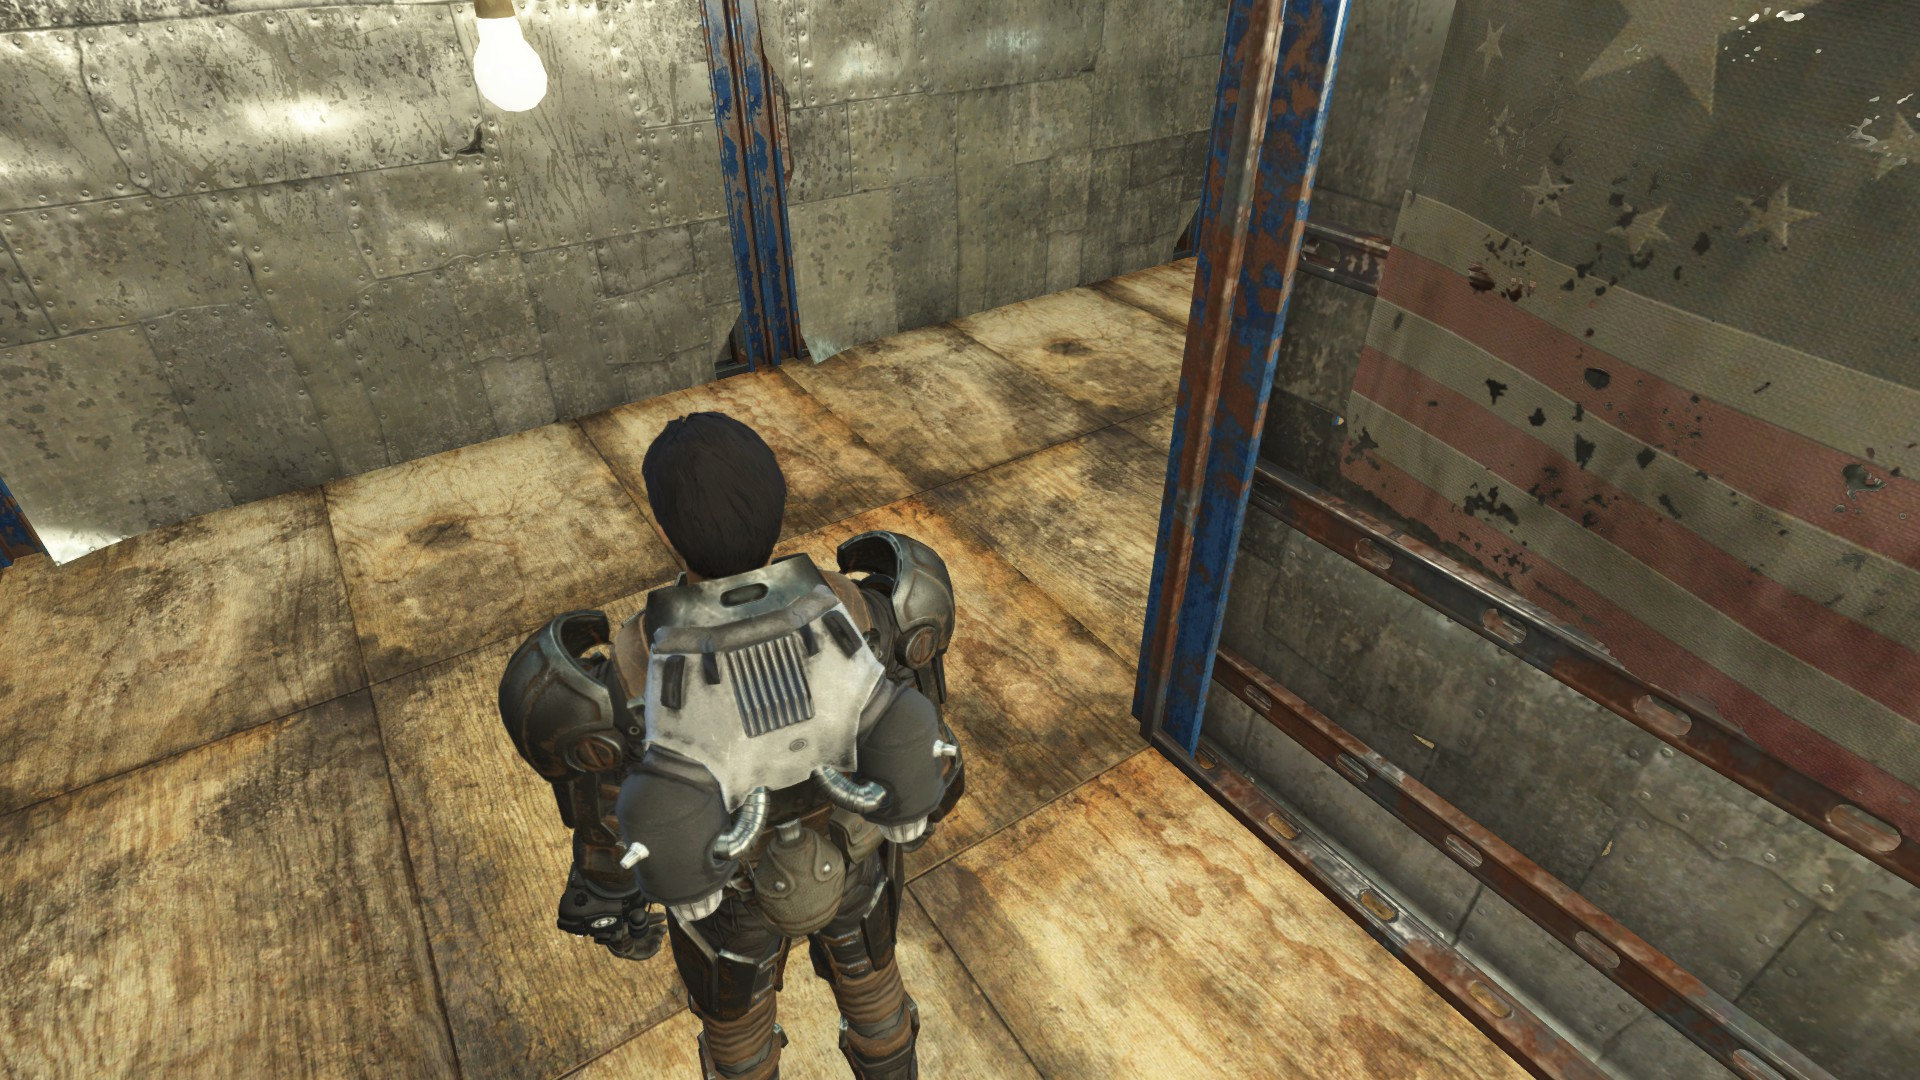 32d9884fa15e Fallout 4 New Mod Allows Players To Use Jetpack Even Without Power Armor